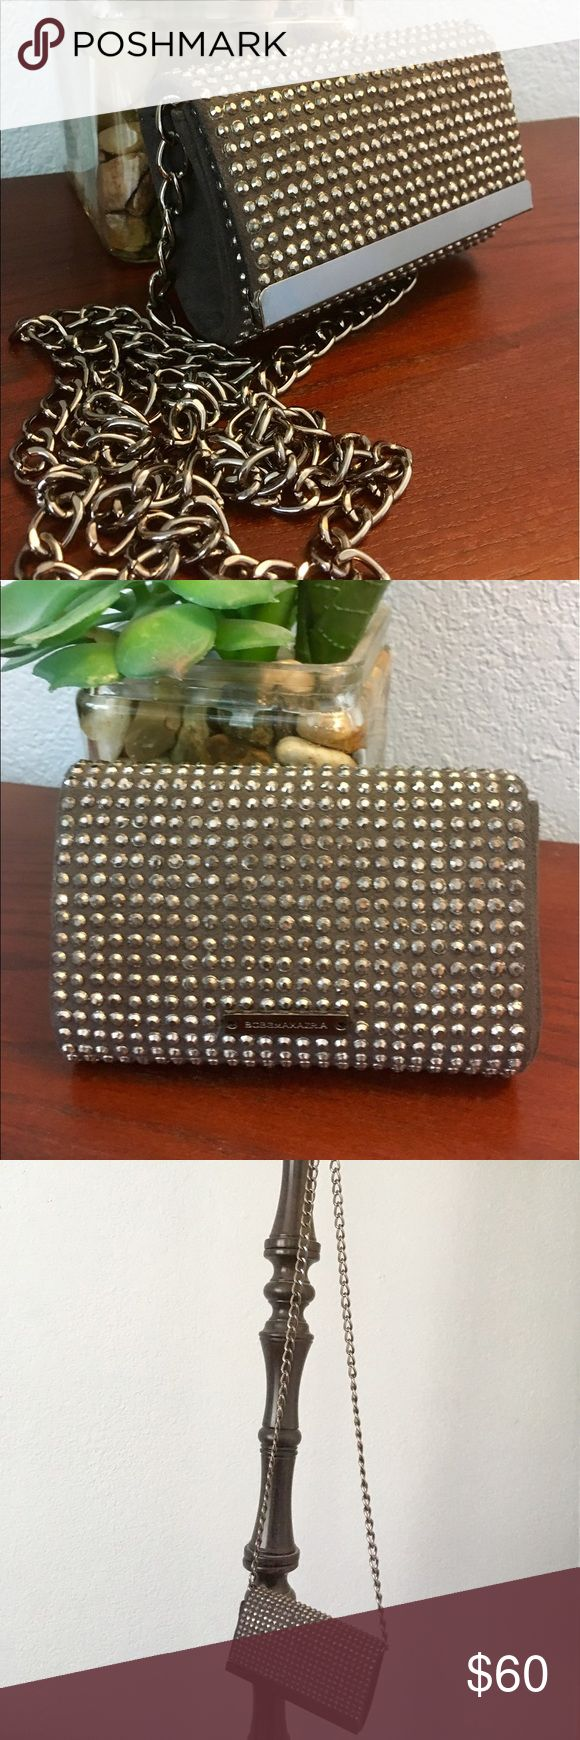 BCBG grey studded clutch with chain Studded grey and gunmetal BCBG clutch. Never worn and in great condition. Comes with a chain to wear cross body or over the shoulder but is not detachable. It can be tucked into the clutch easily. BCBGMaxAzria Bags Clutches & Wristlets